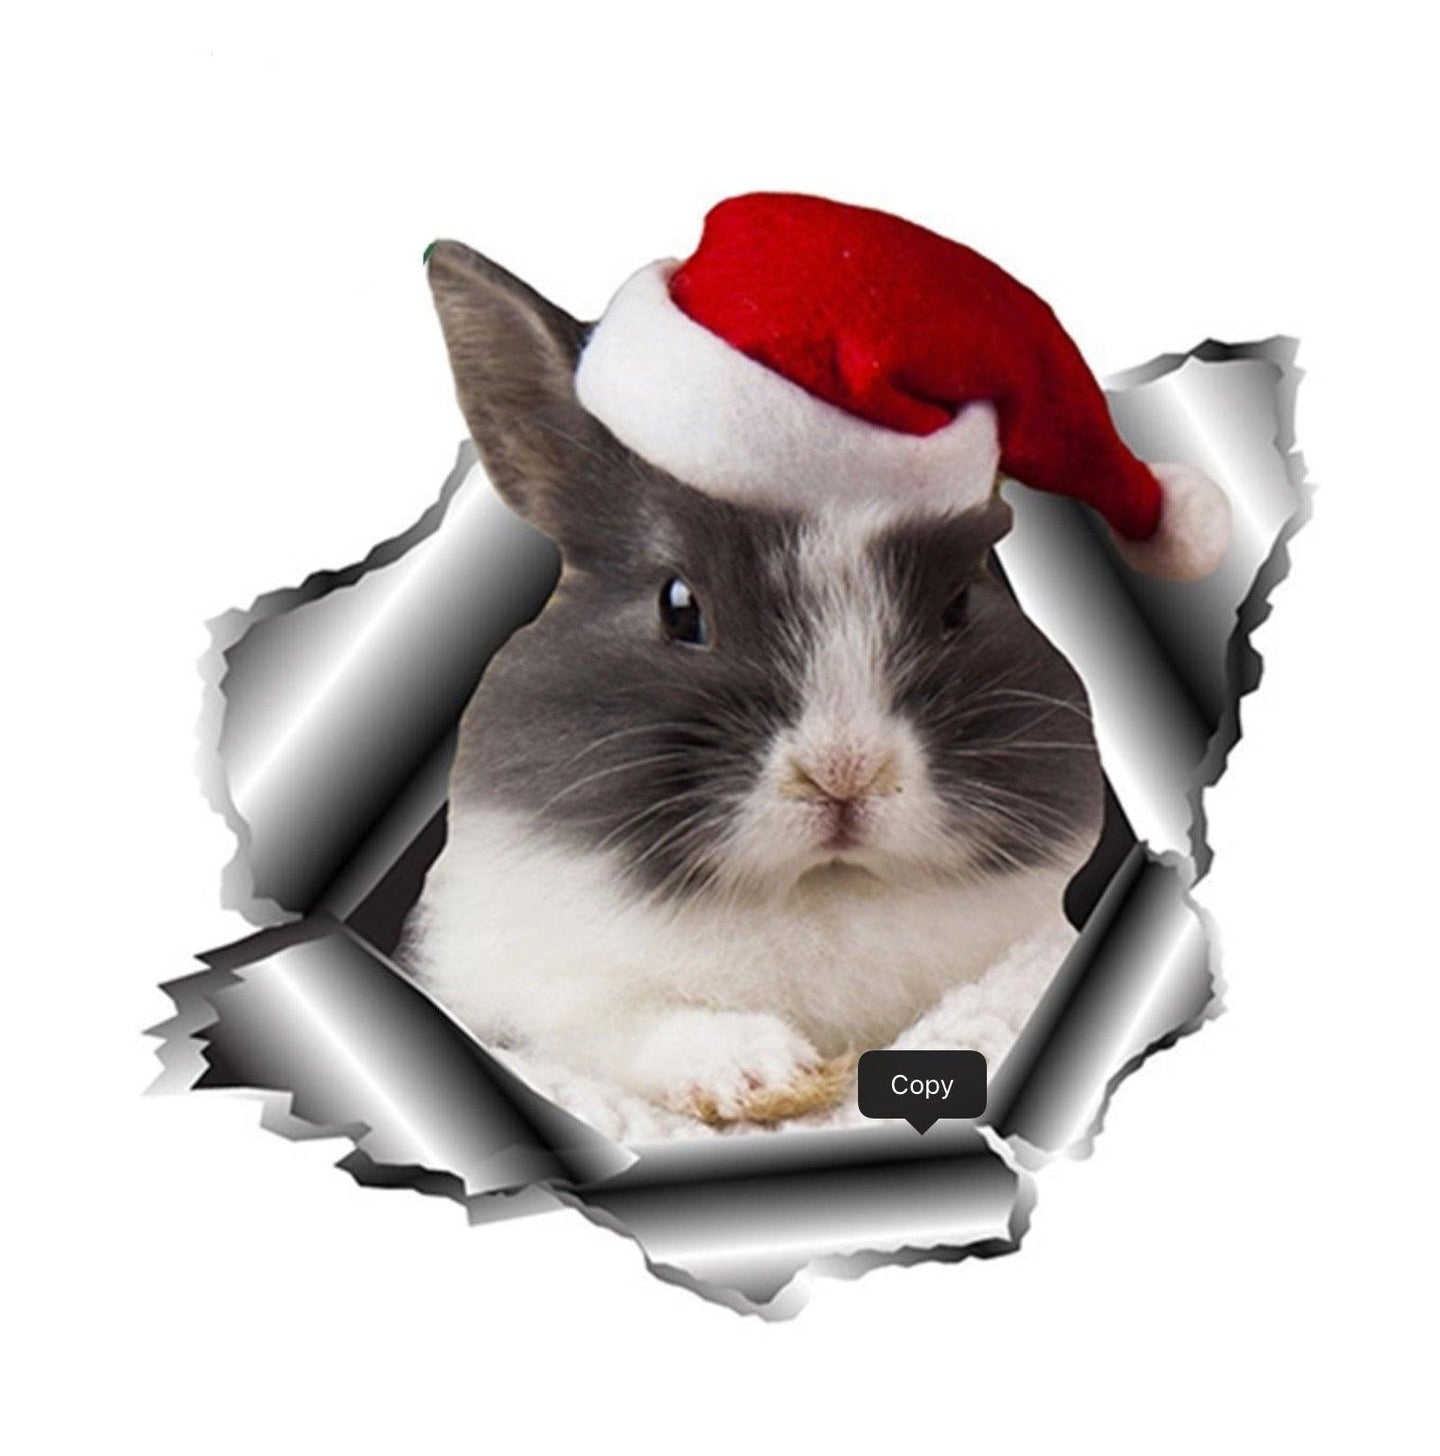 Christmas Bunny Vinyl Decals for Car, Windows, and Laptops